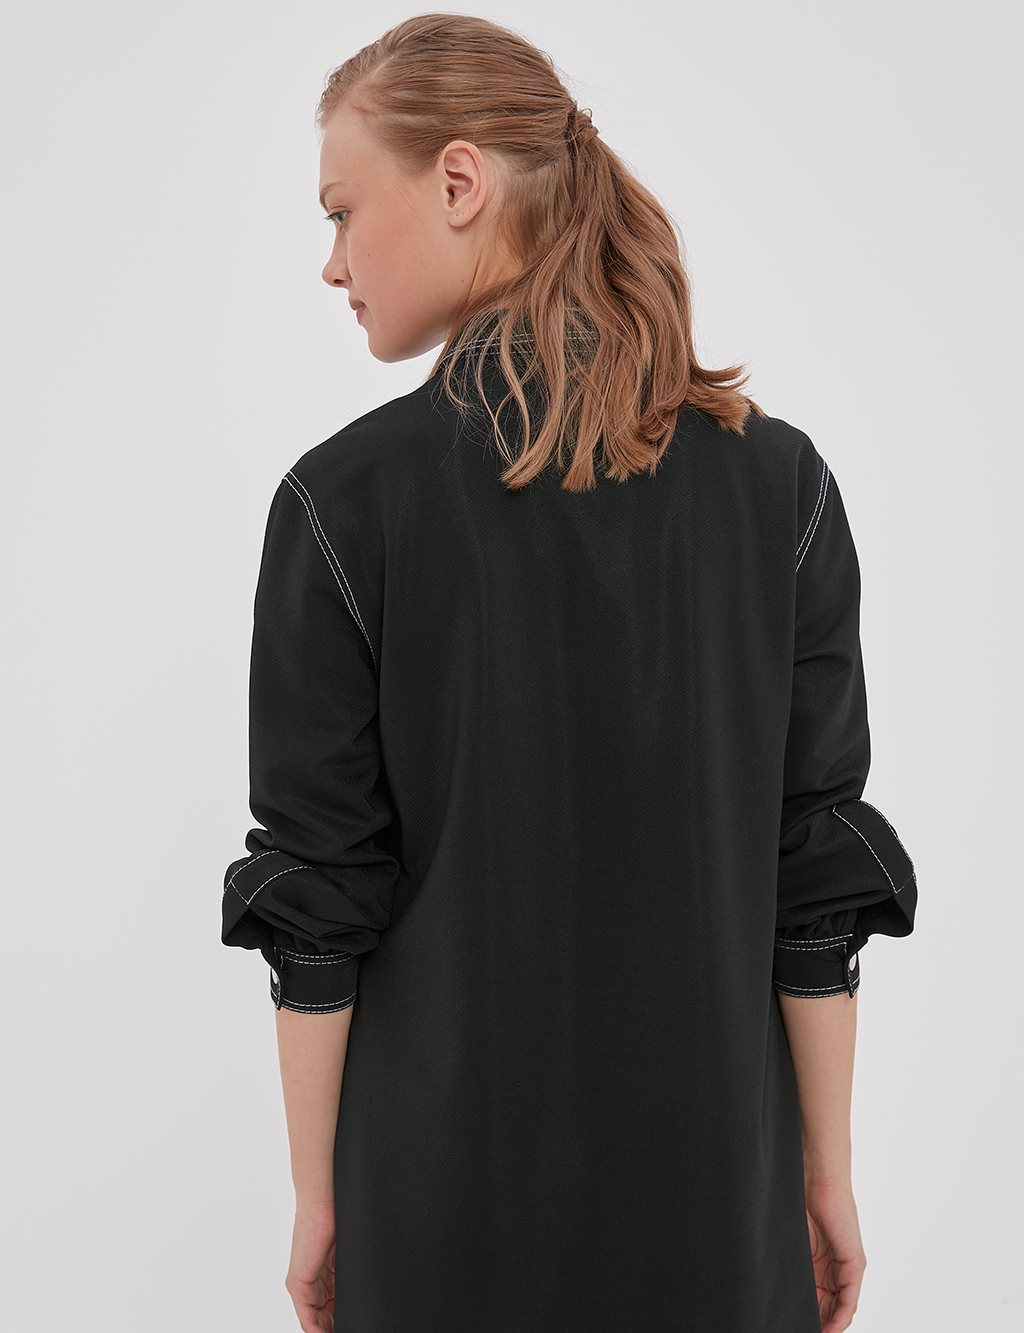 Contrast Stitching Pocket Tunic A20 21262 Black